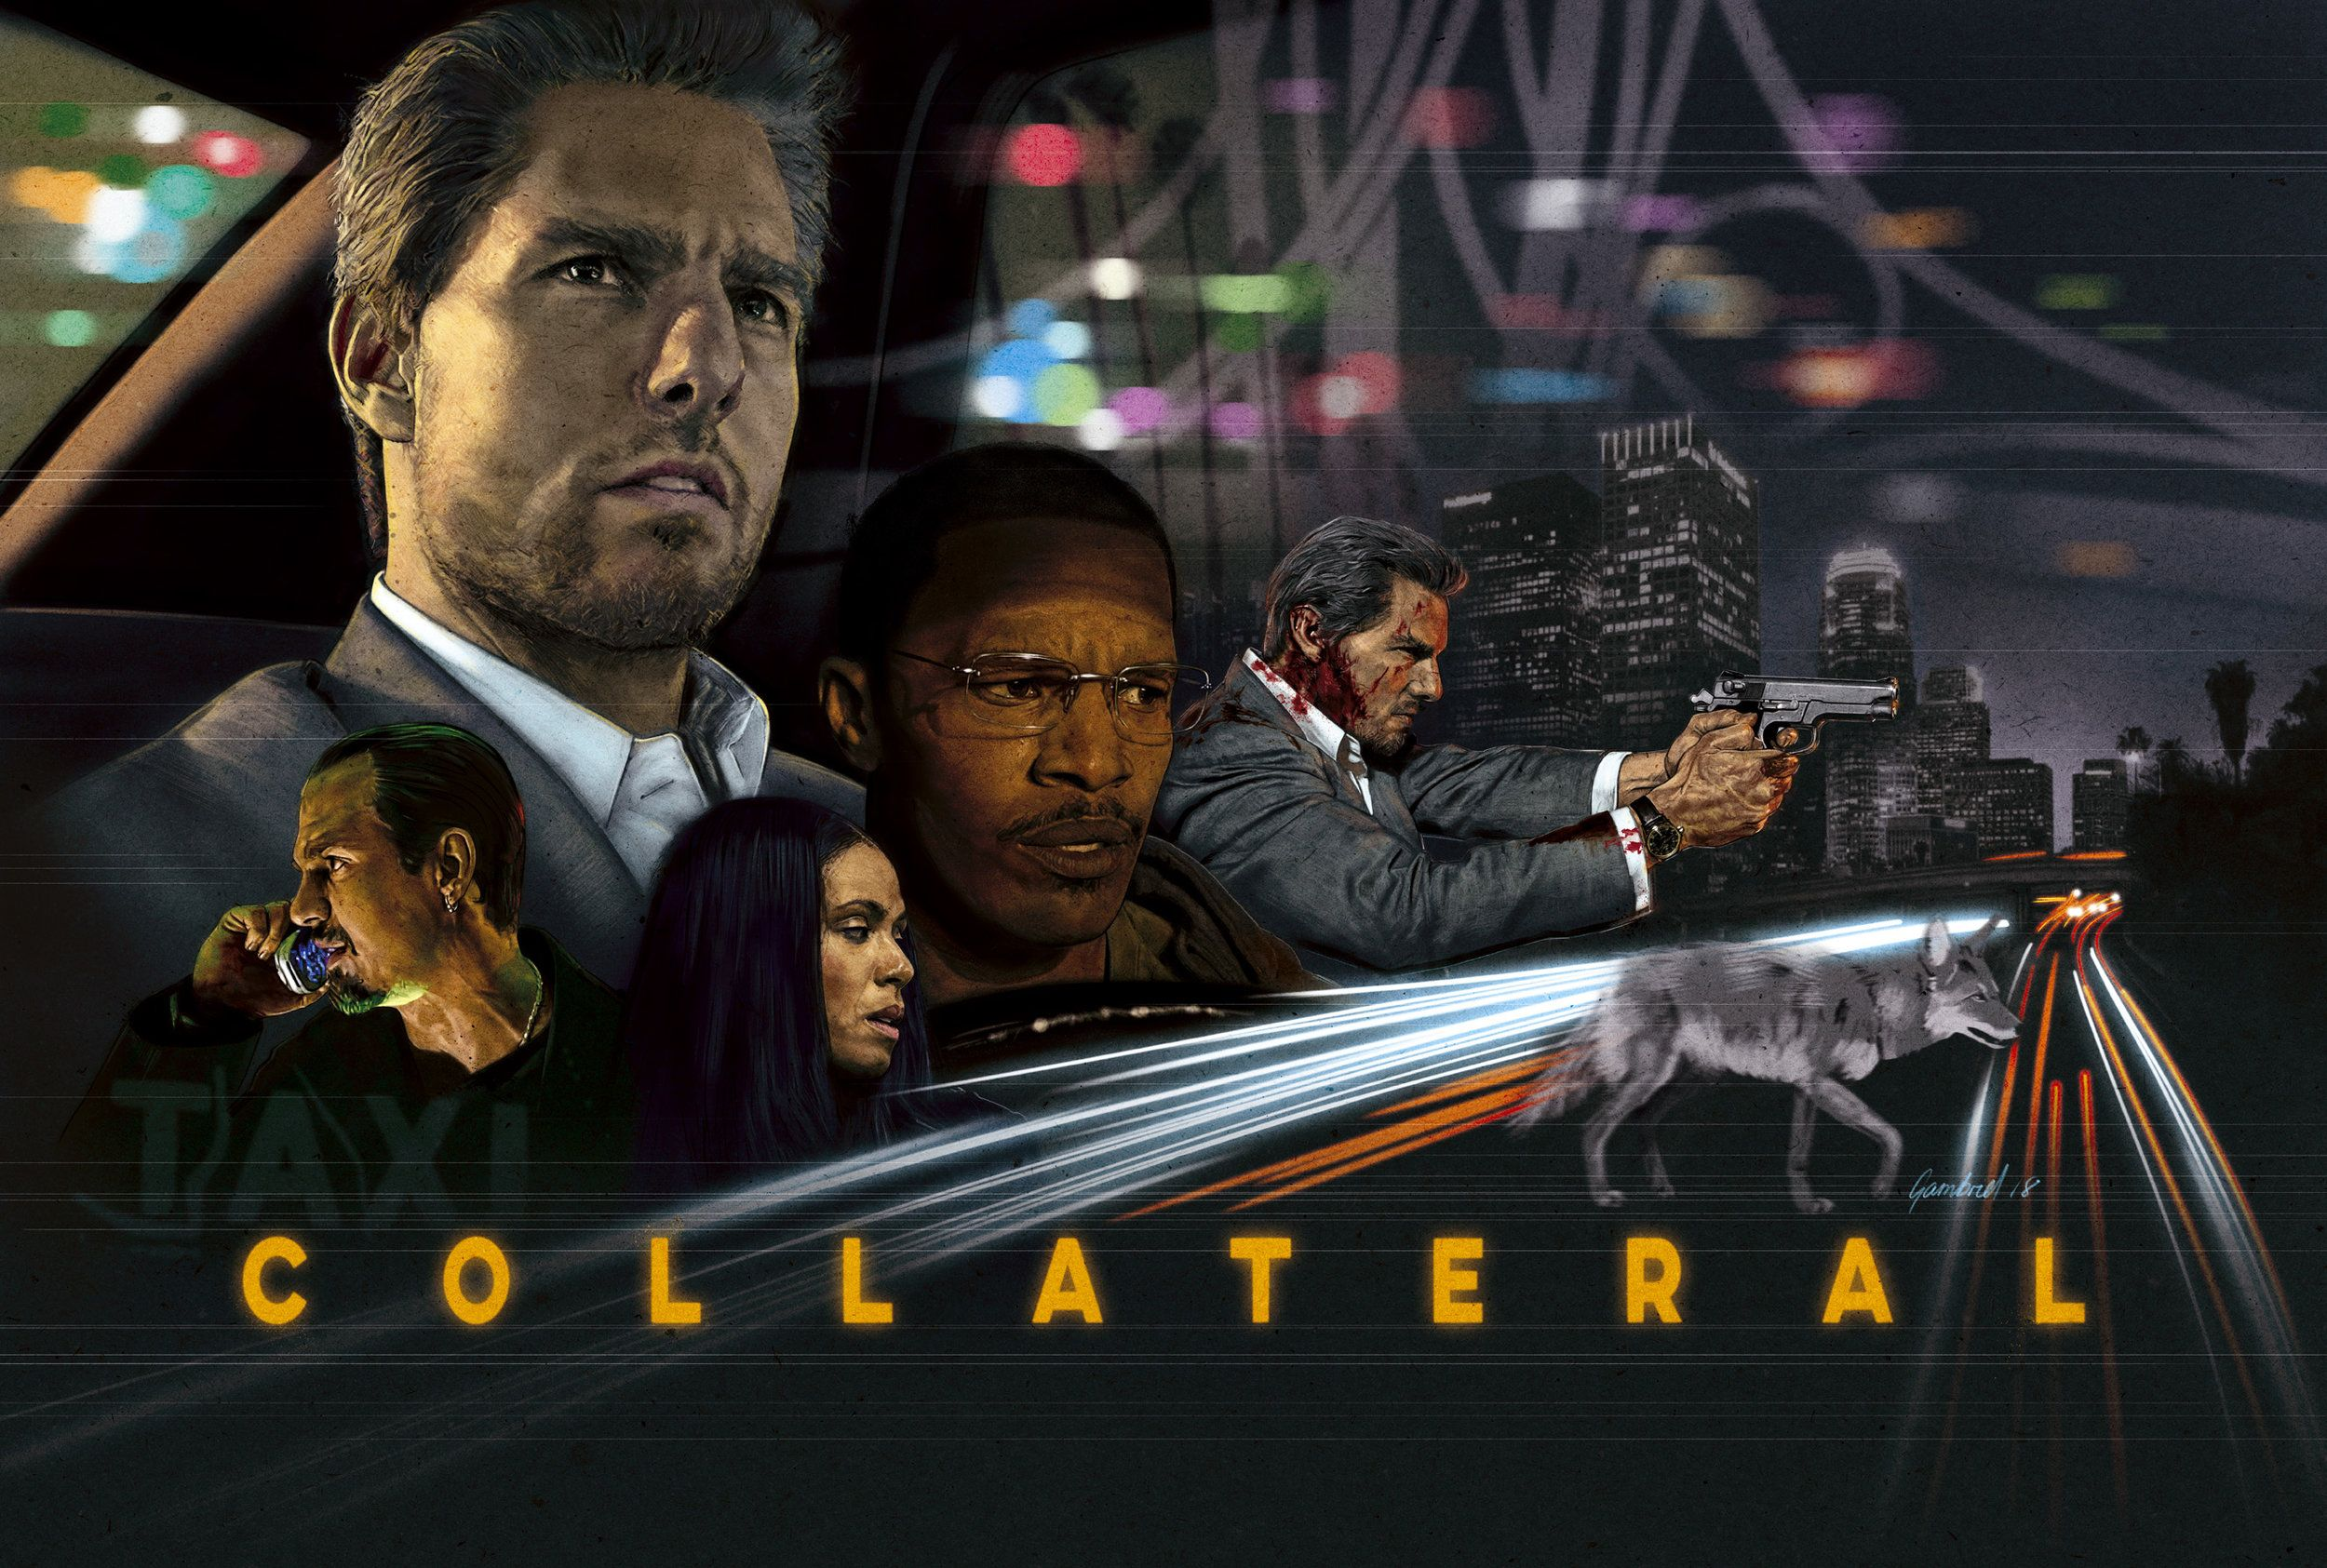 Collateral 2004 2500x1685 By Mike Gambriel Avengers Film Posters Best Movie Posters Avengers Film